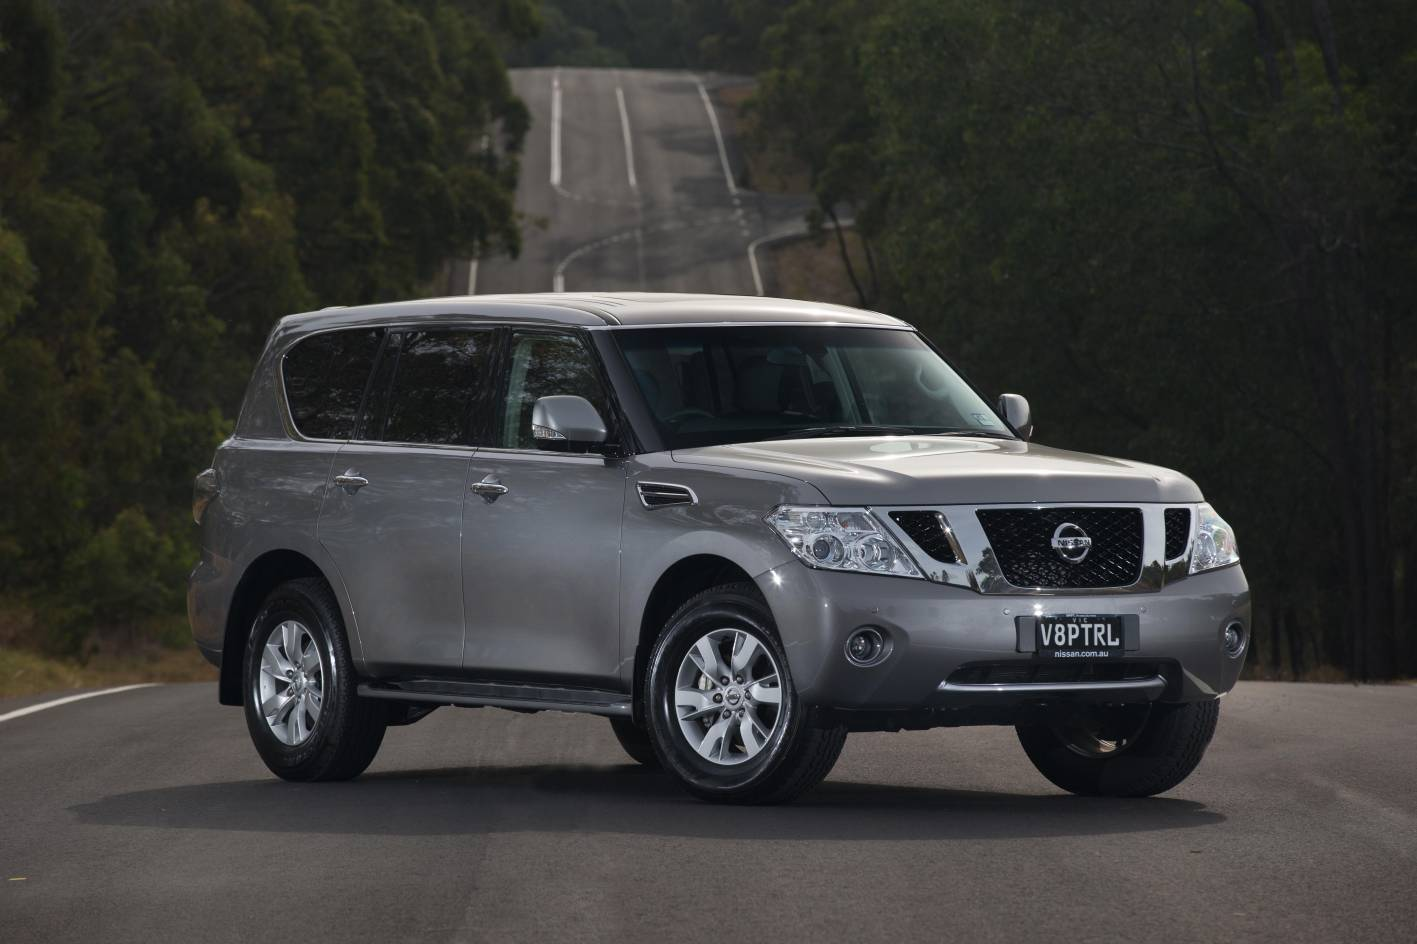 Five Star Nissan >> News - All-New Super-Luxury V8 Nissan Patrol On-Sale February